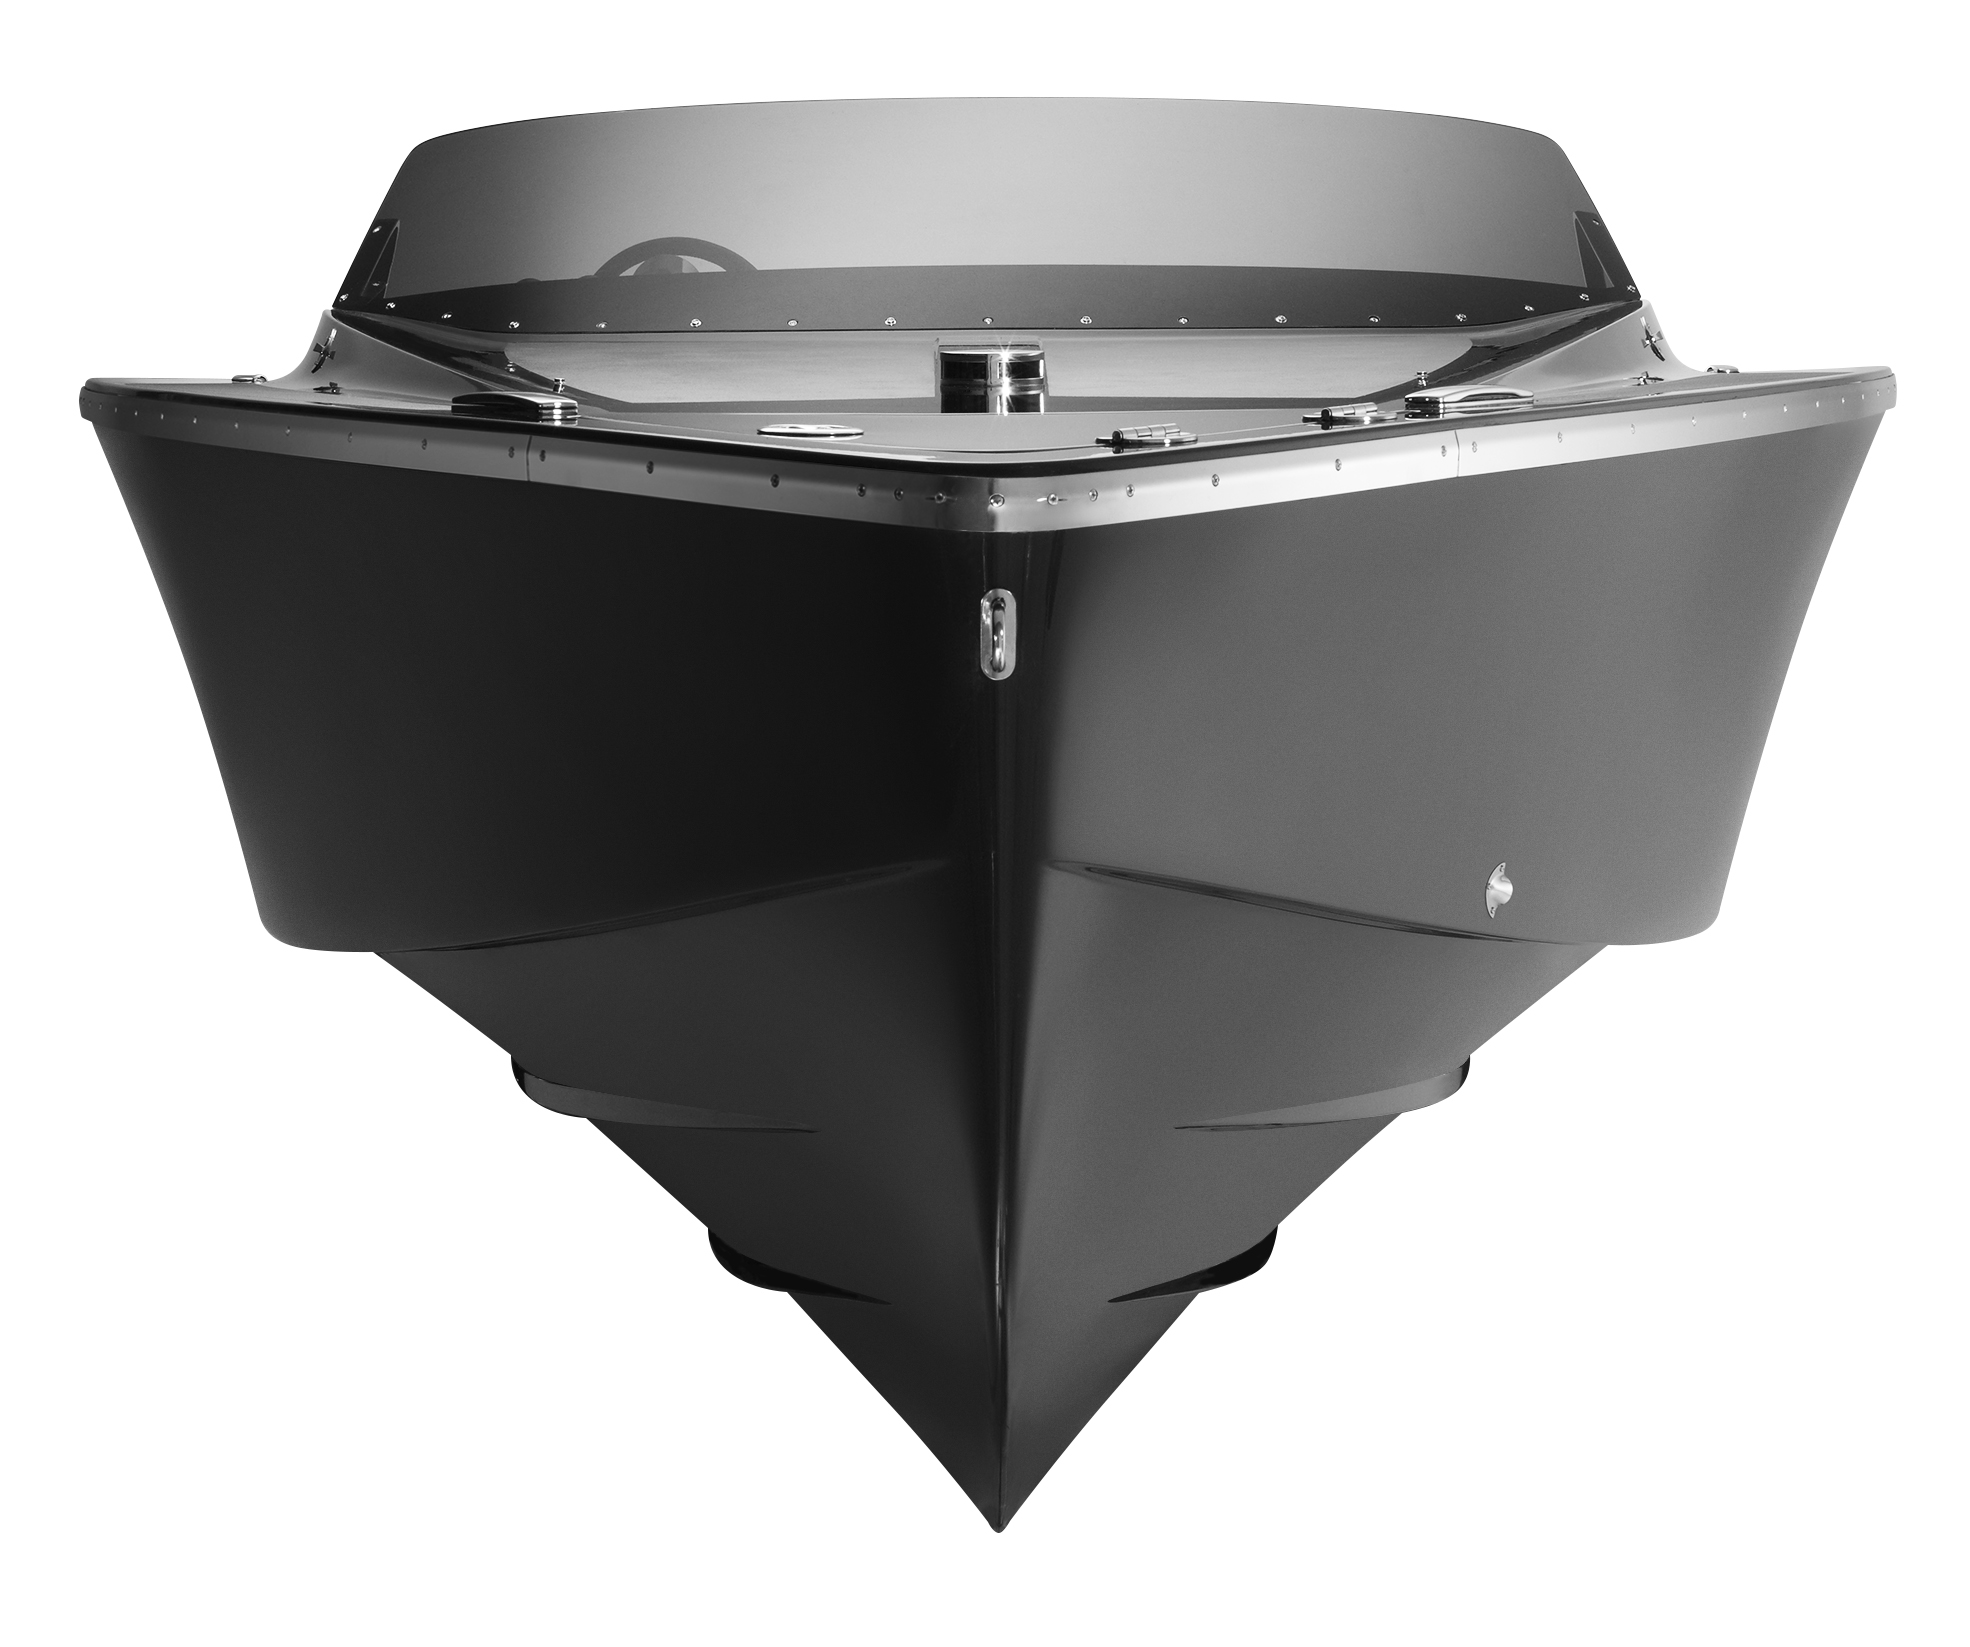 Frauscher 747 Mirage superyacht tender - front view — Yacht Charter & Superyacht News